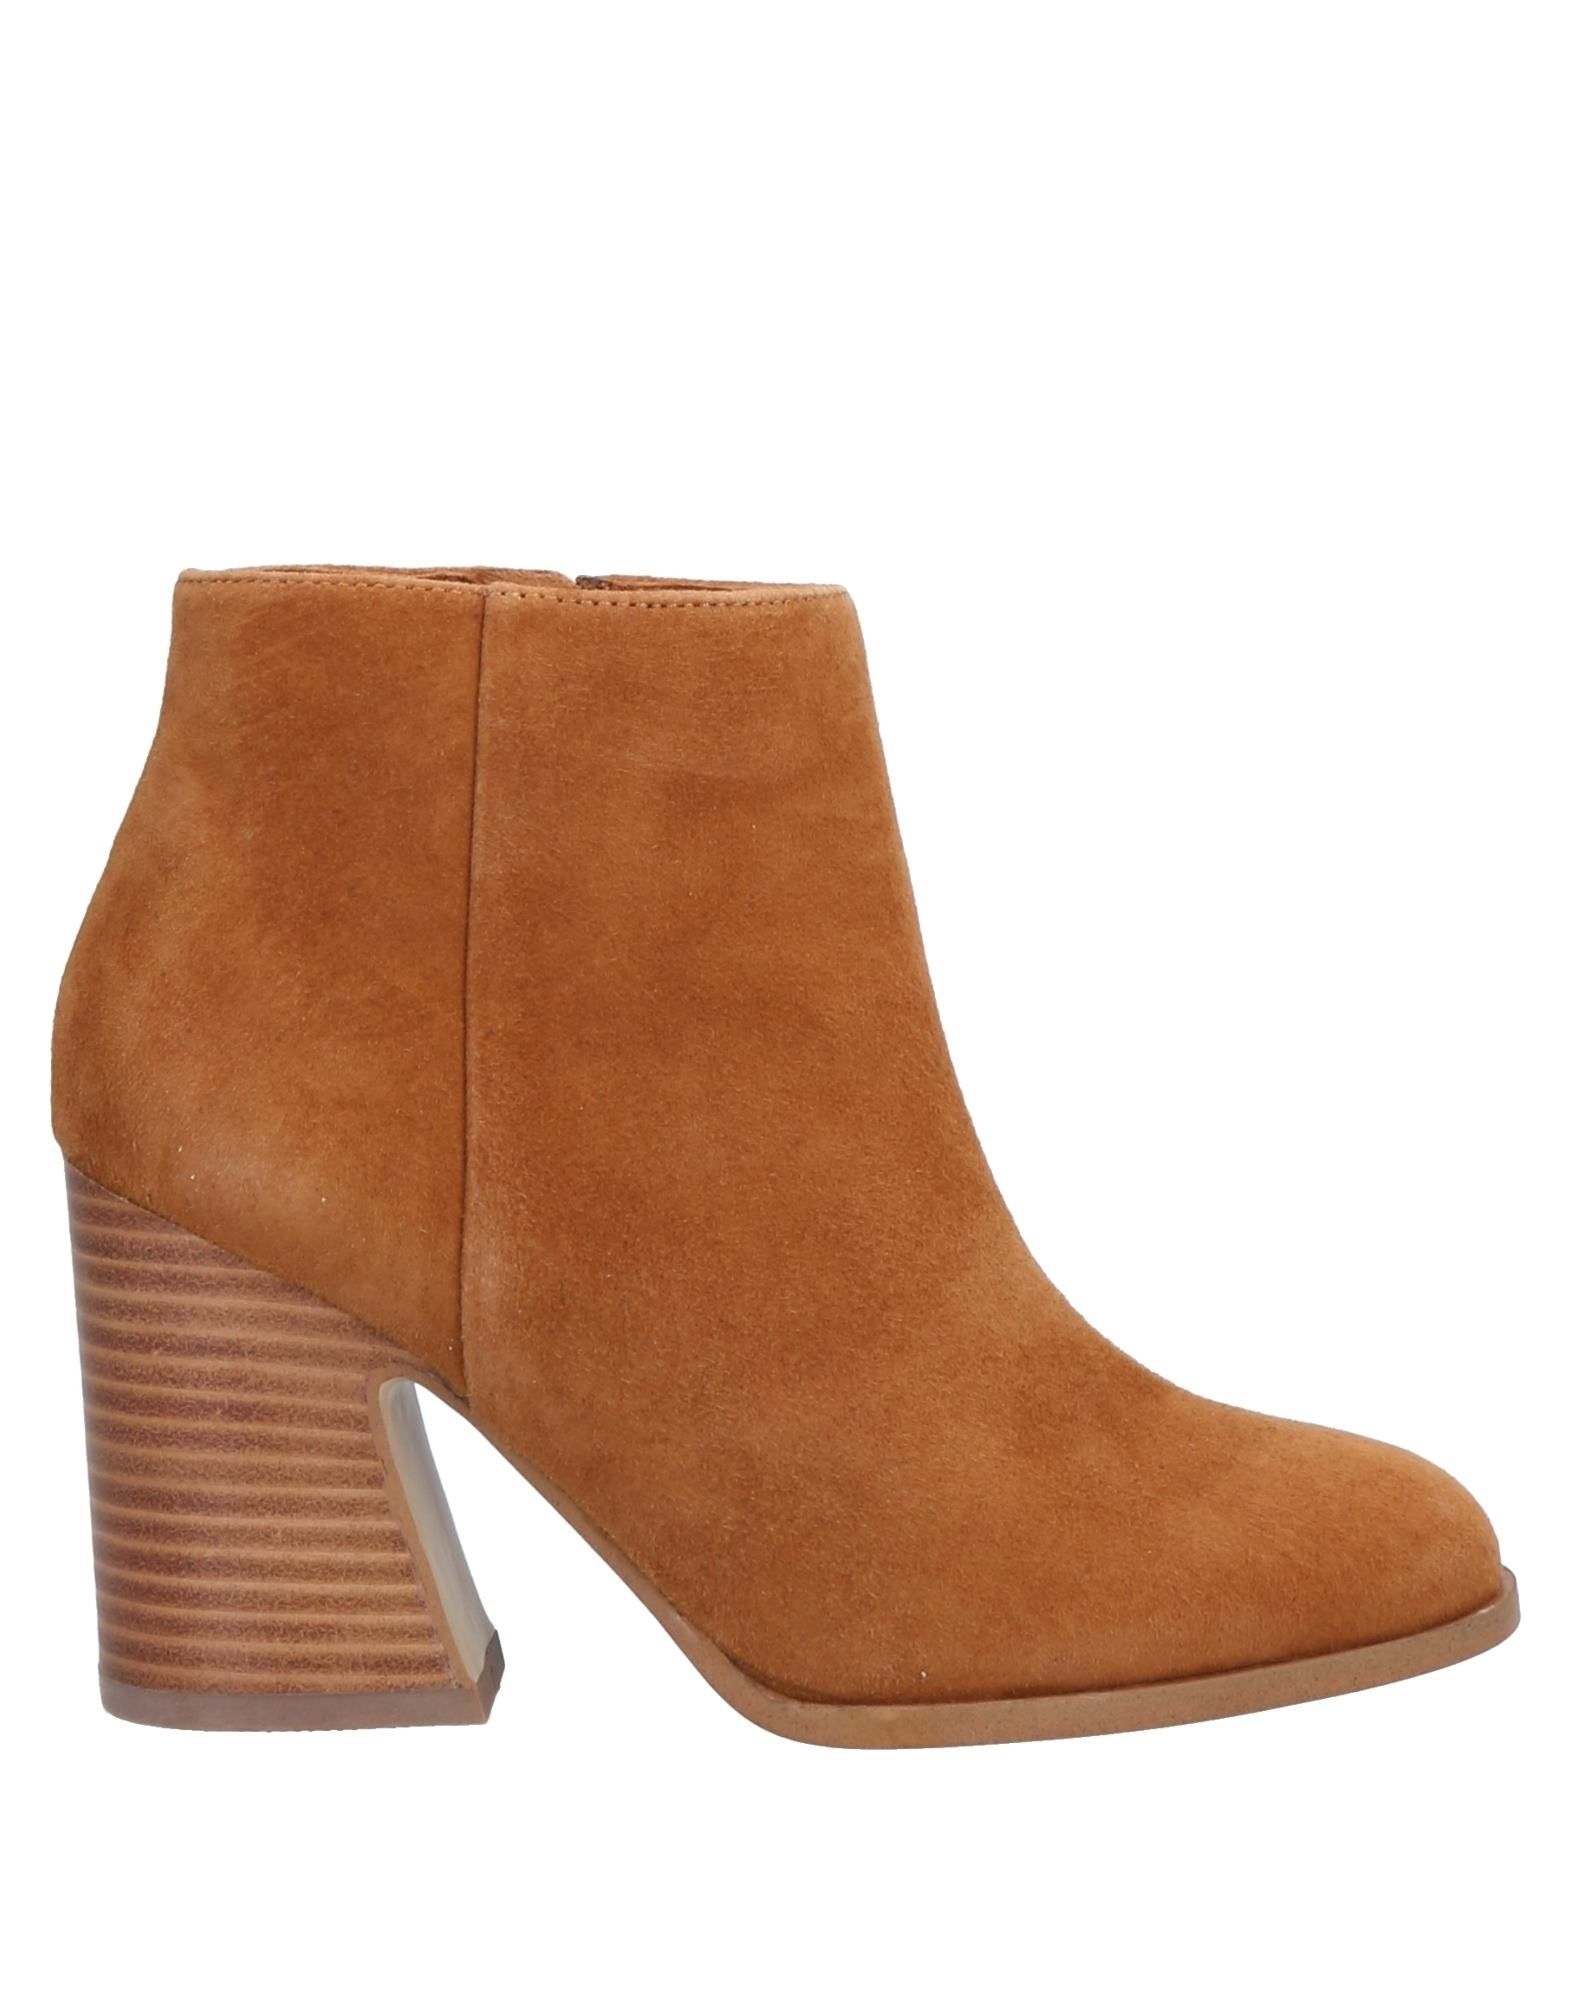 MELLOW YELLOW Ankle Boots in Camel